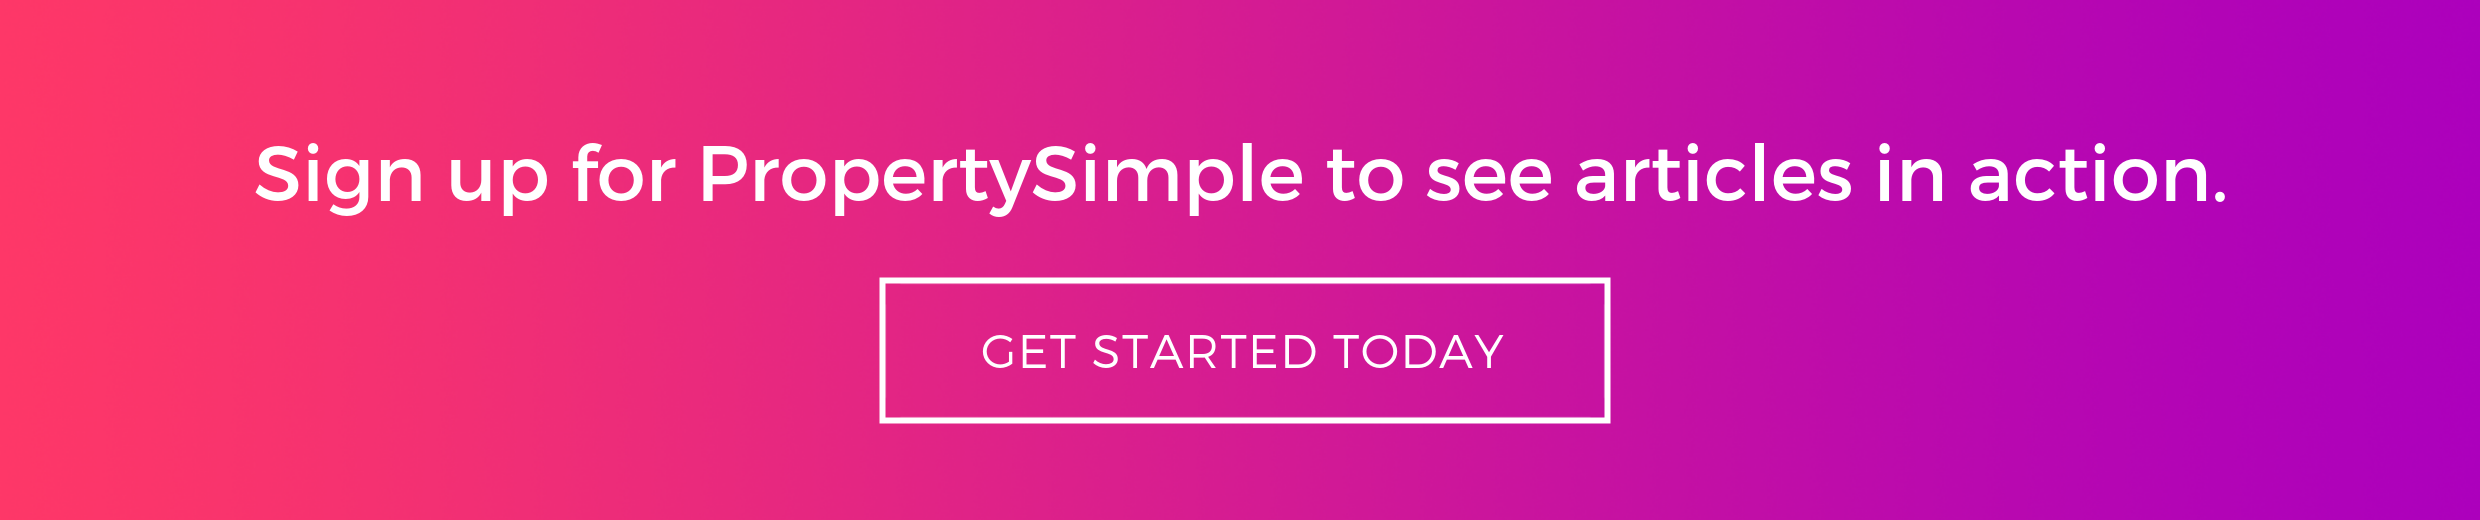 Sign up for PropertySimple to see articles in action